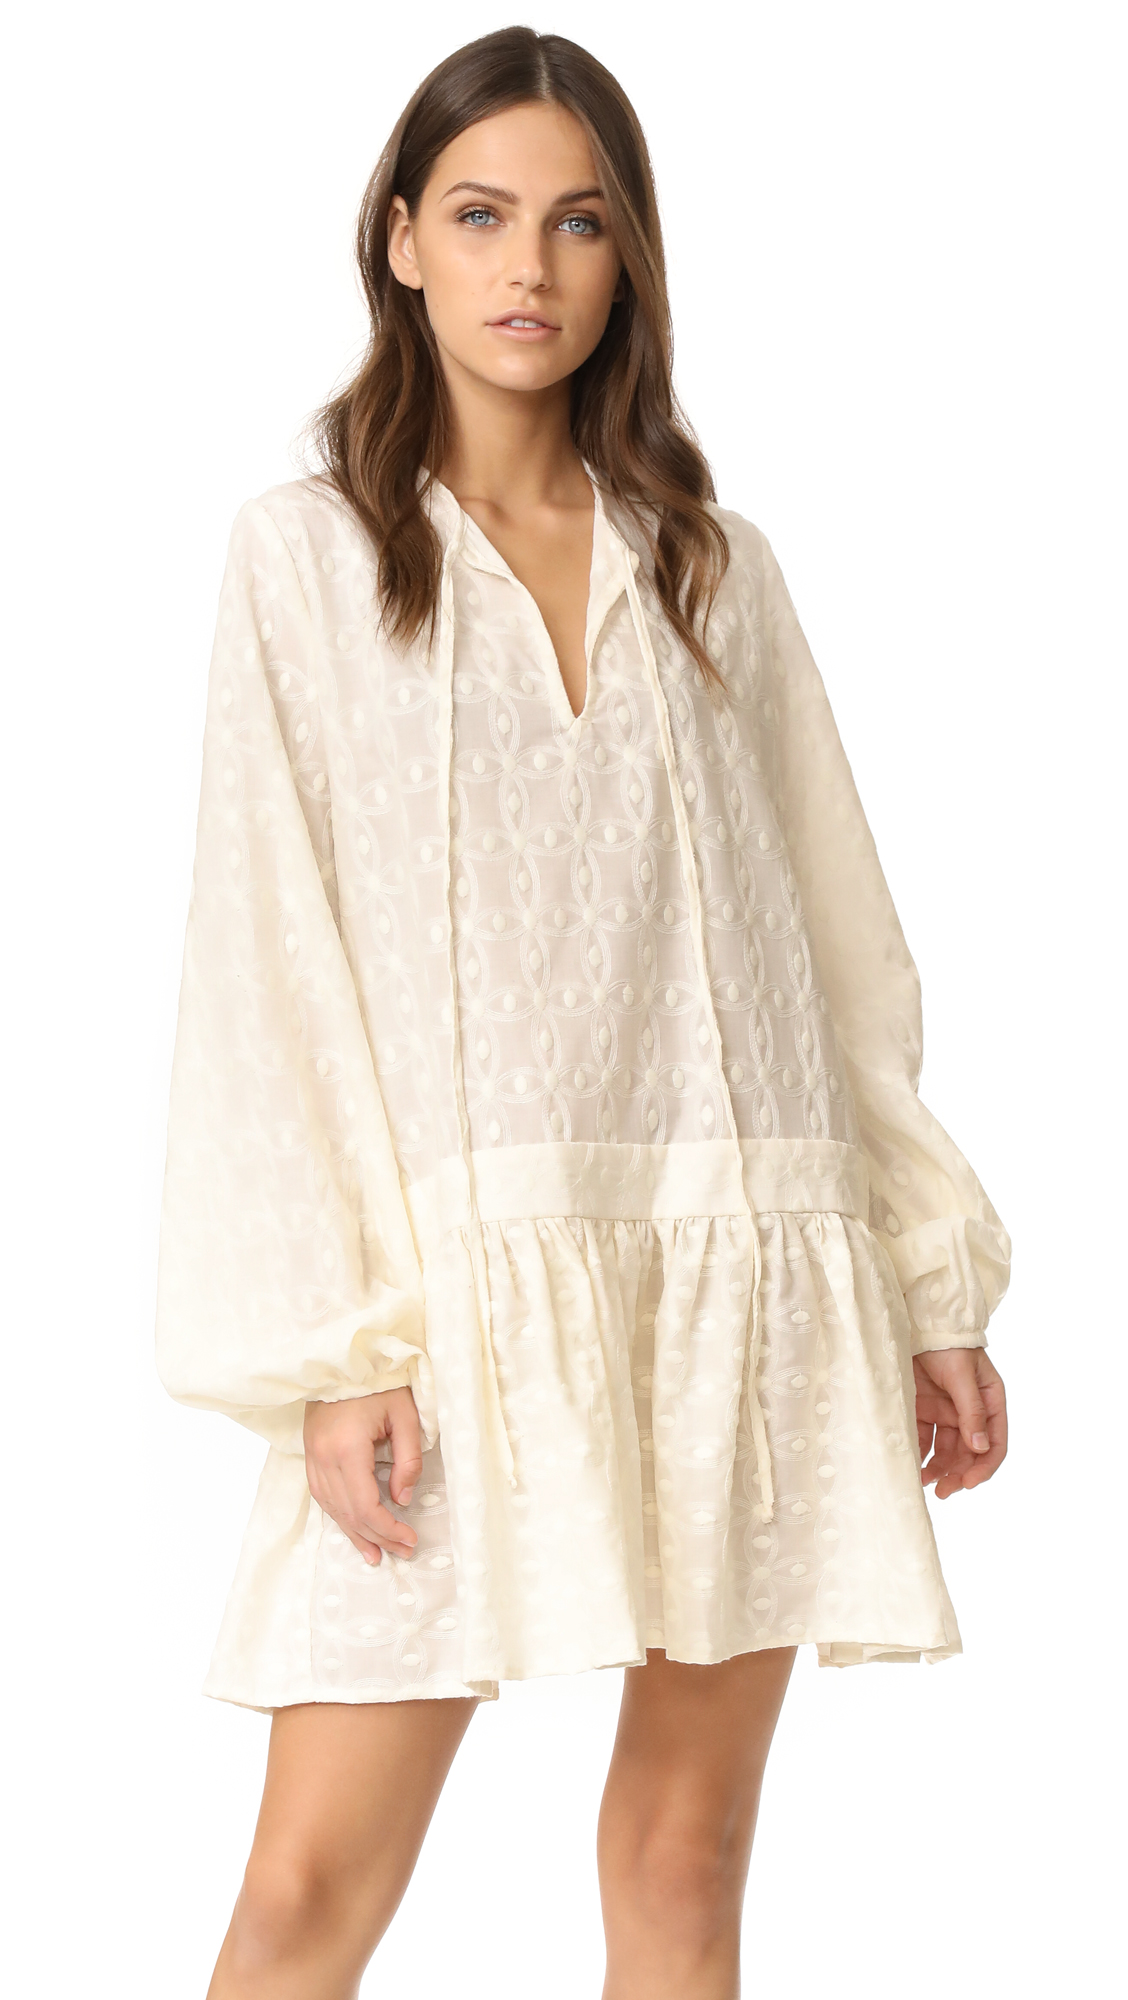 matin embroidered full sleeve dress shopbop